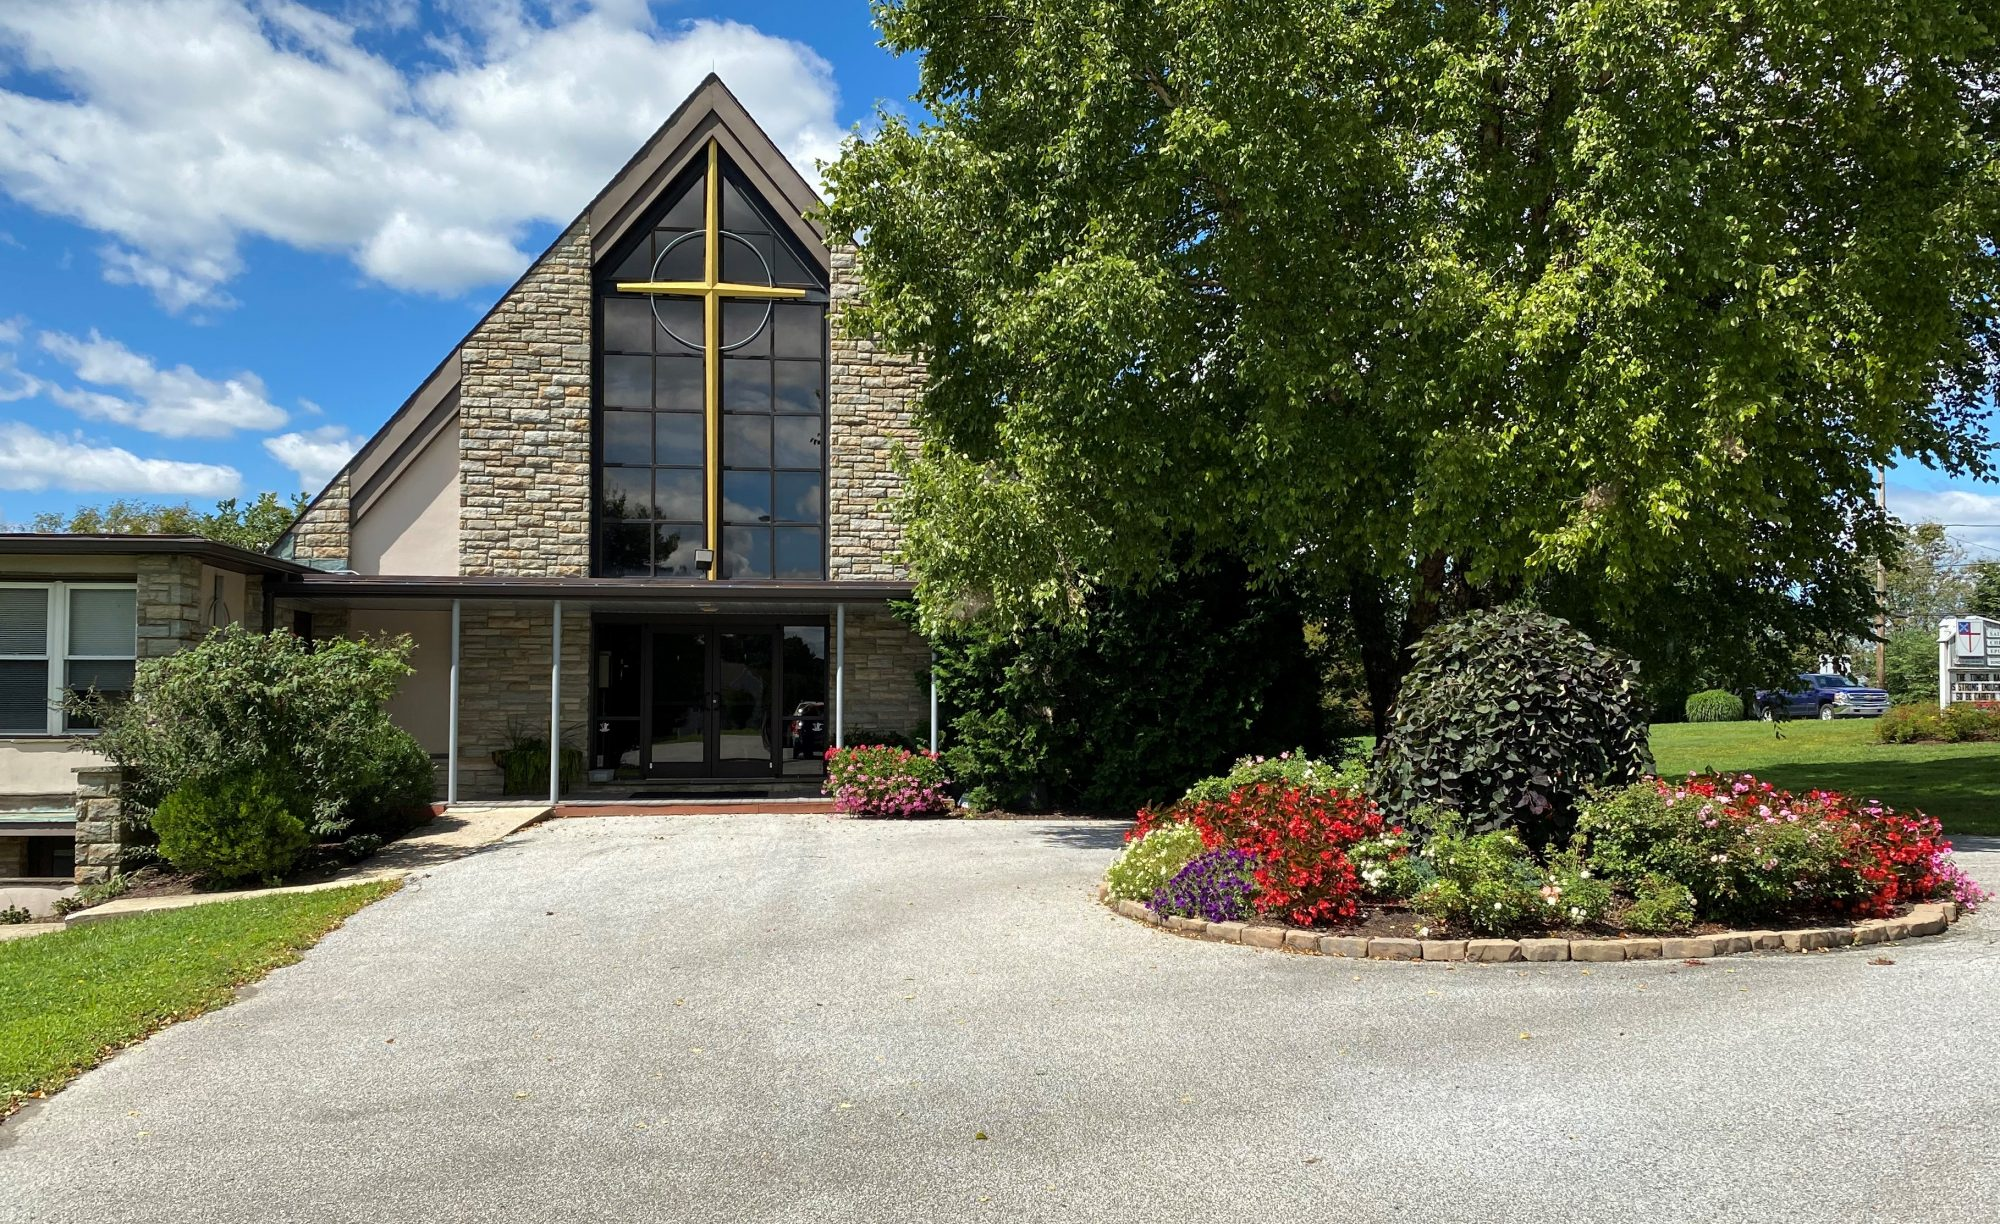 St. Christopher's Episcopal Church Sunday Worship Live-streaming every Sunday at 10:30 a.m.